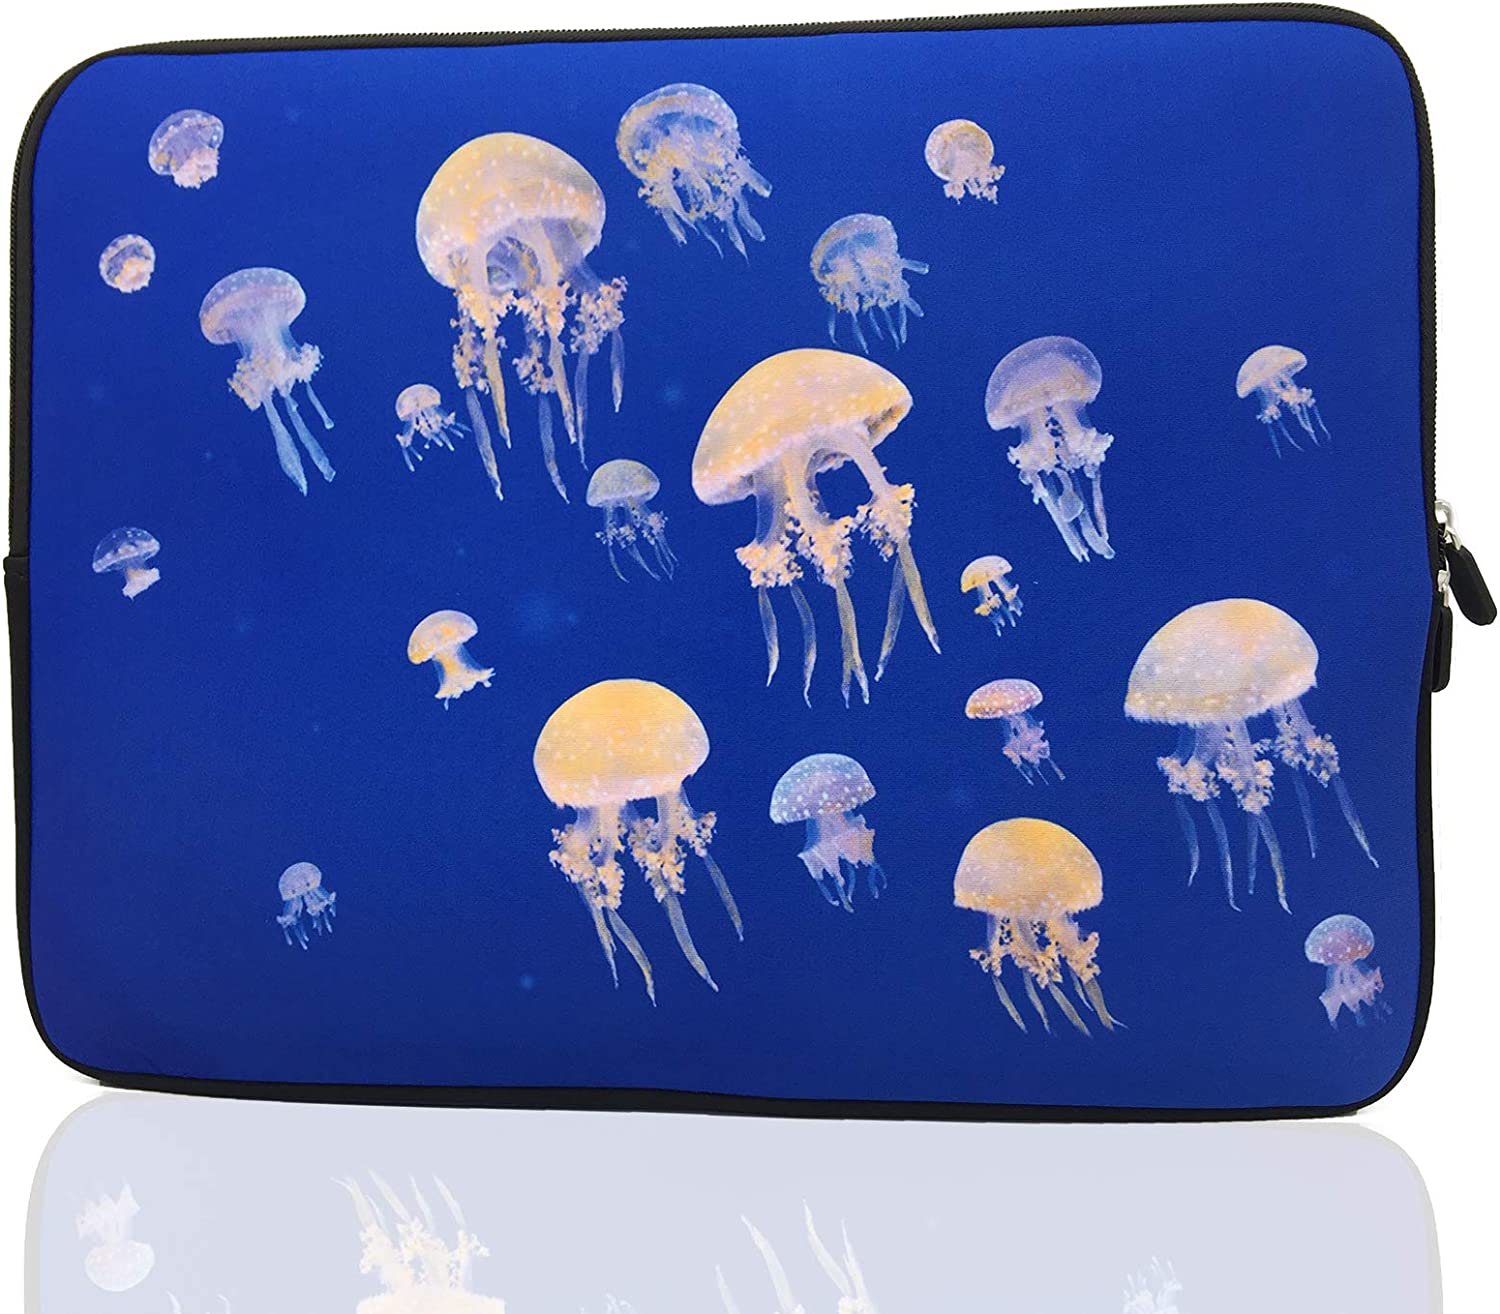 15-Inch to 15.6-Inch Laptop Sleeve Carrying Case Neoprene Sleeve for Acer/Asus/Dell/Lenovo/MacBook Pro/HP/Samsung/Sony/Toshiba (Jellyfish)